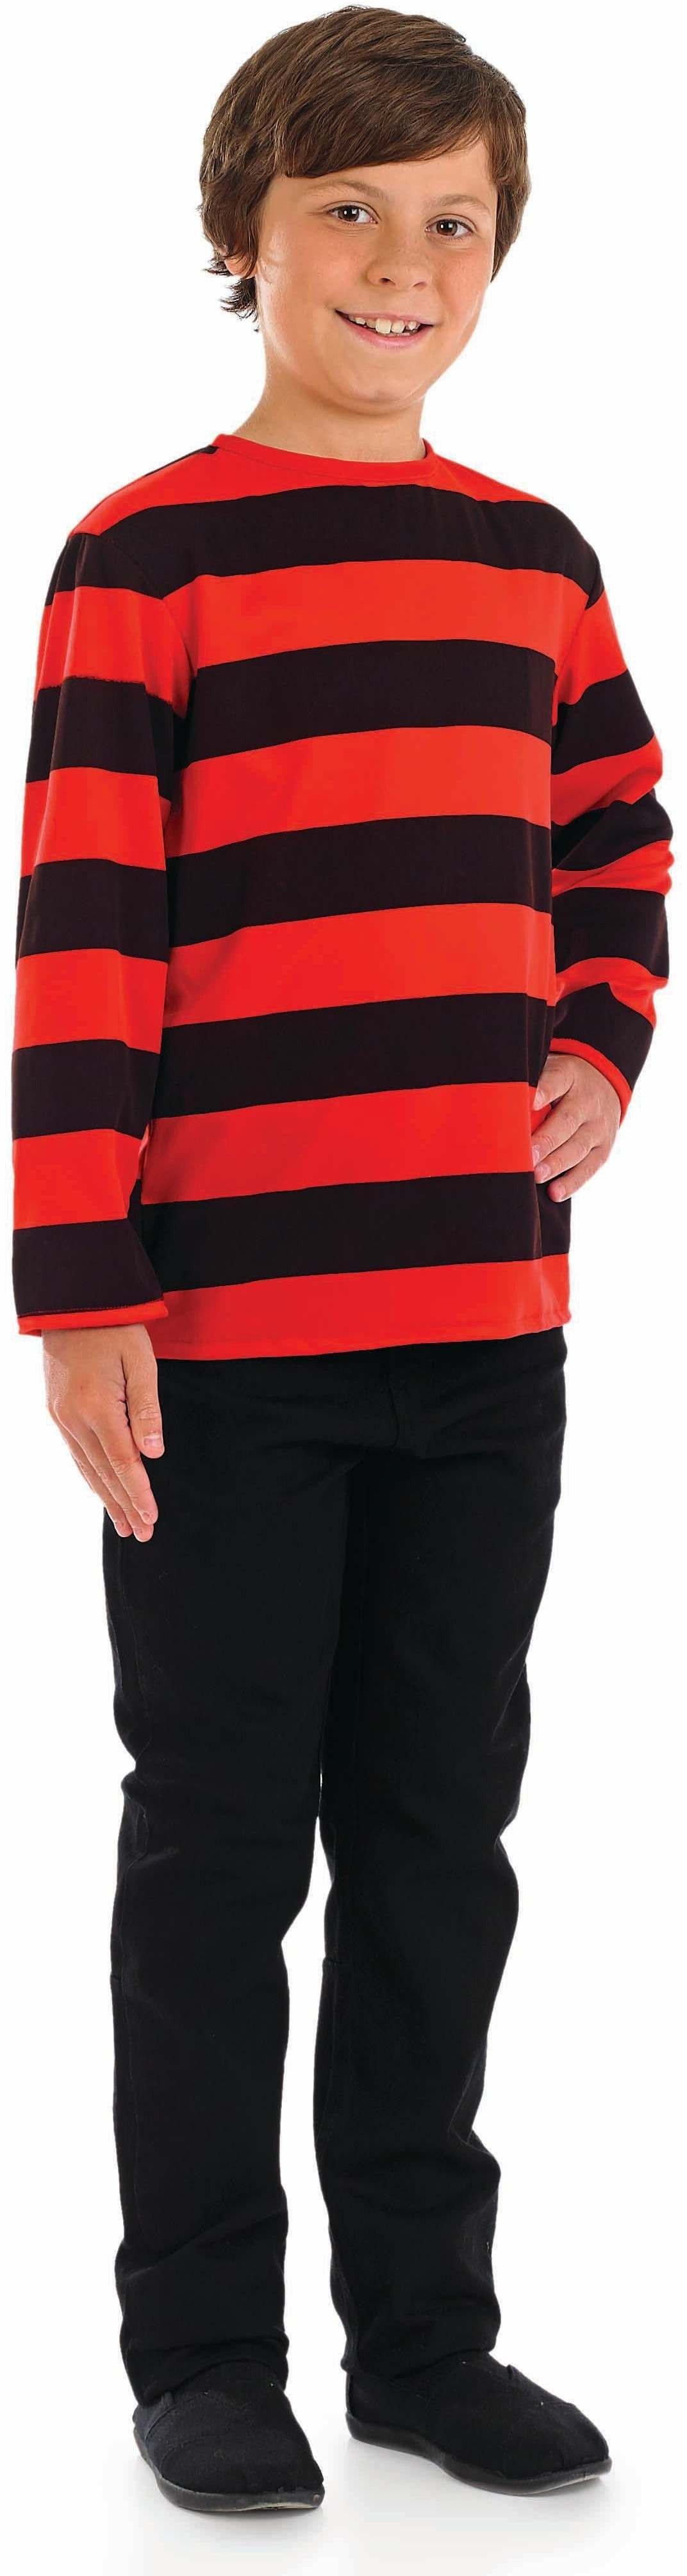 Boys Black & Red Striped Jumper - (Black, Red)